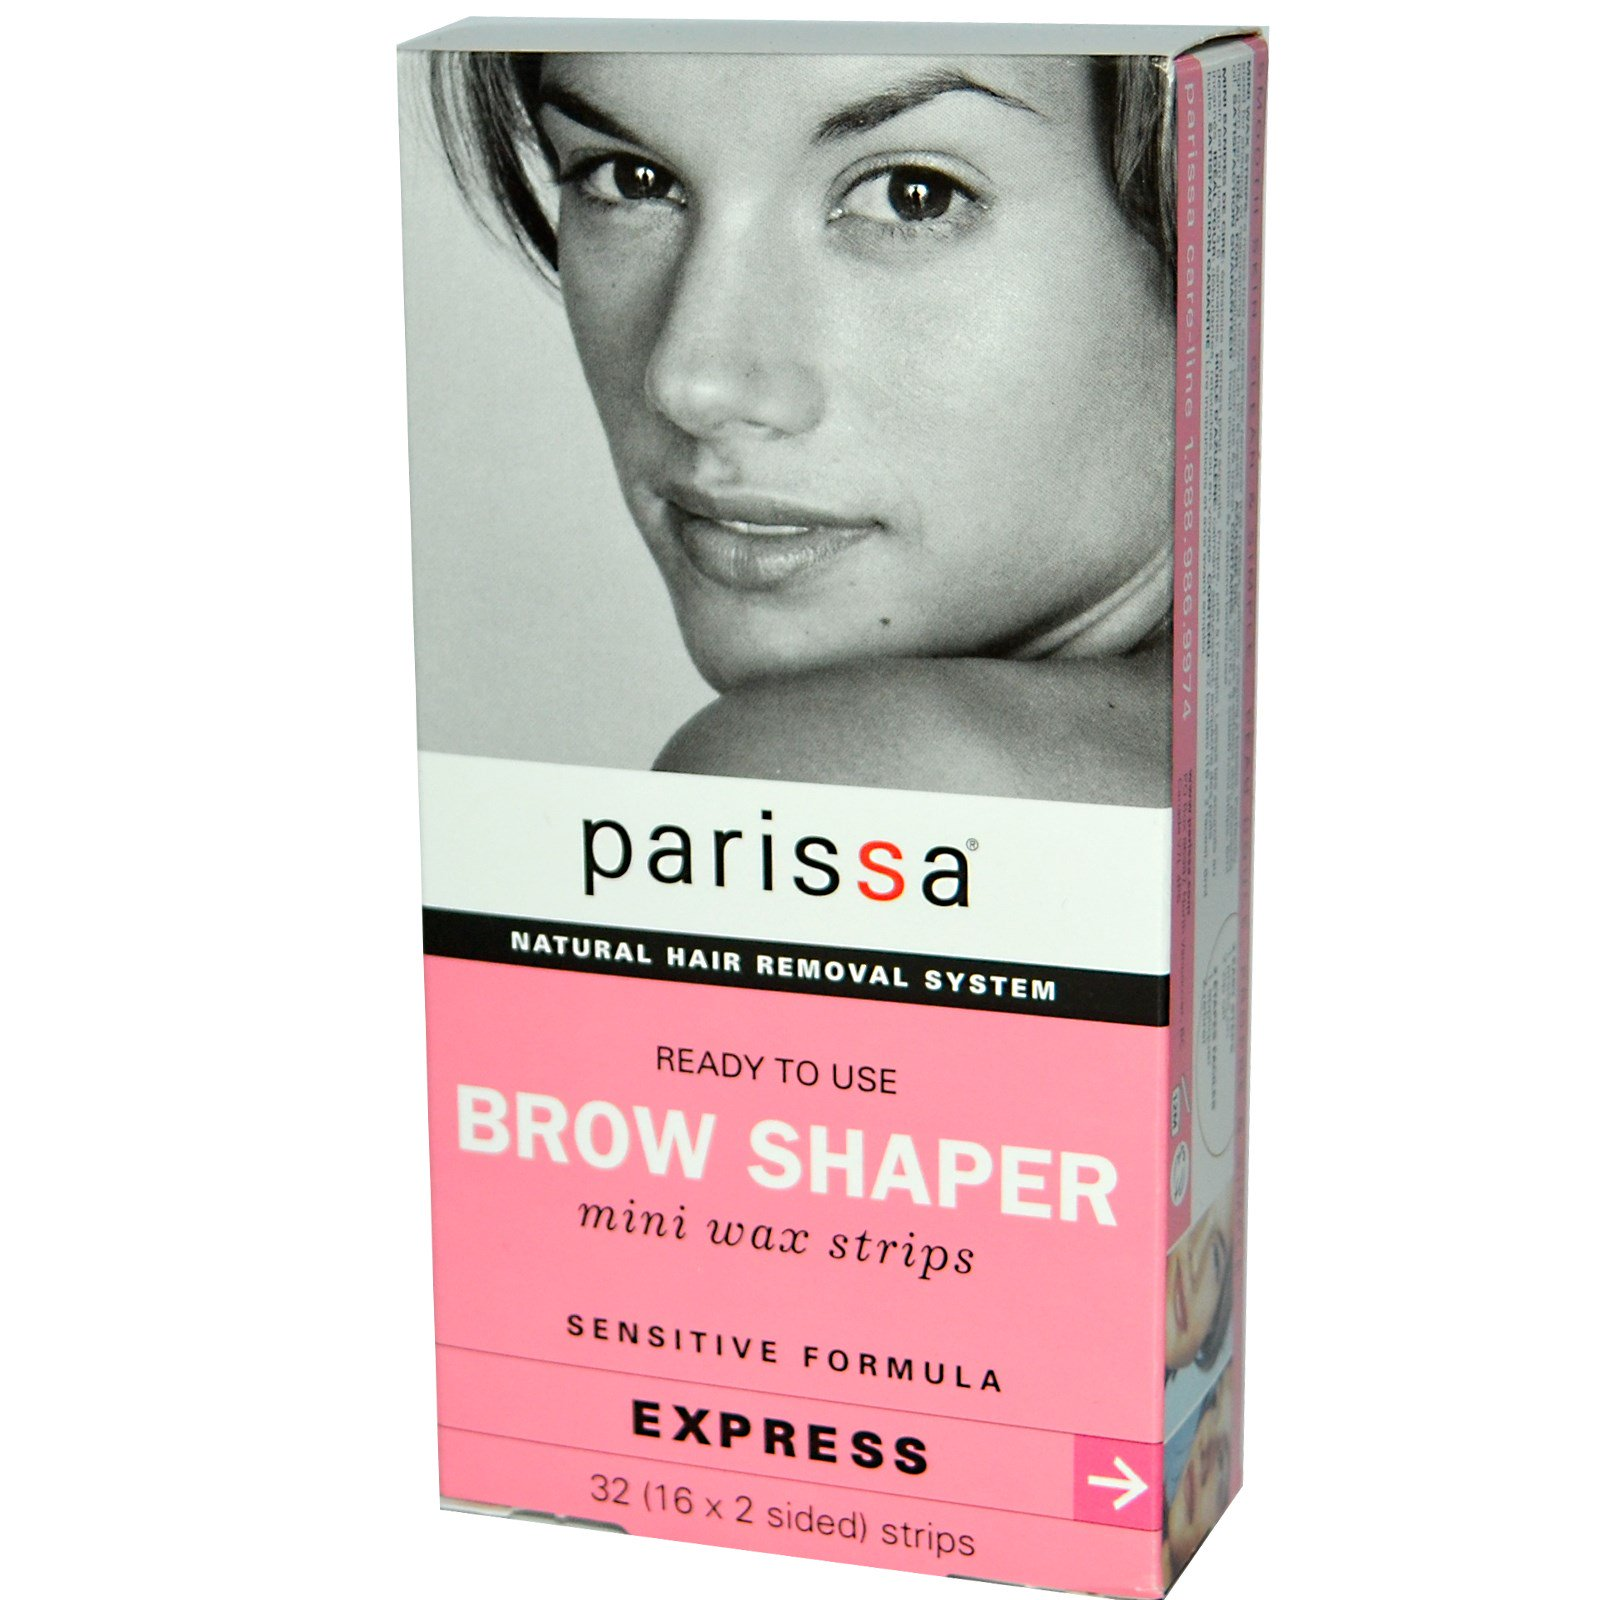 Parissa Natural Hair Removal System Brow Shaper Mini Wax Strips